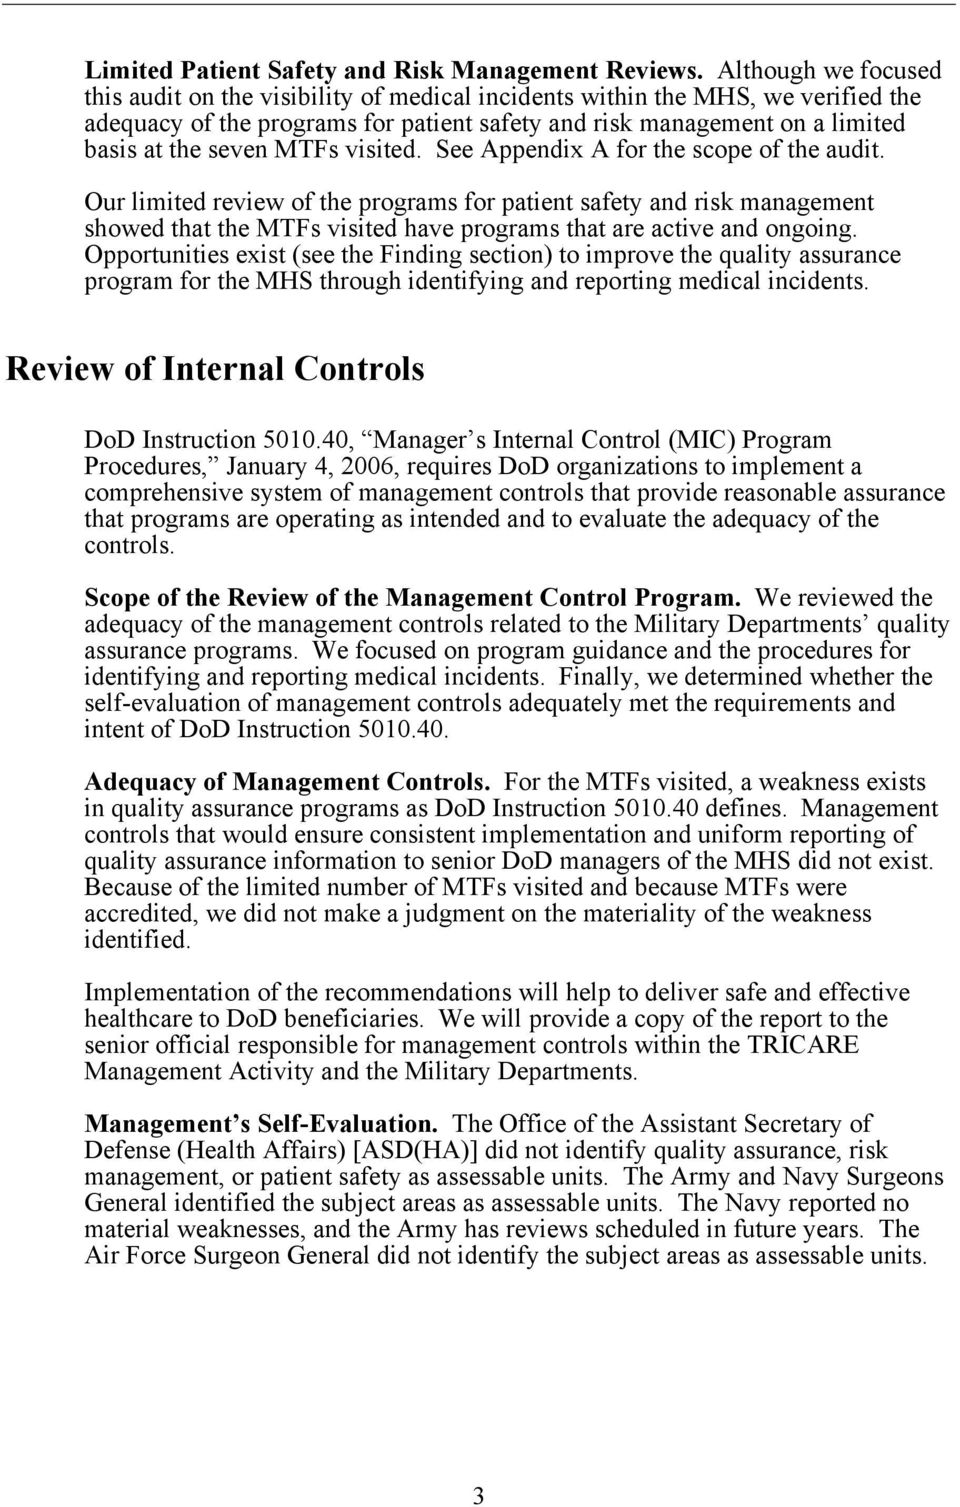 MTFs visited. See Appendix A for the scope of the audit.